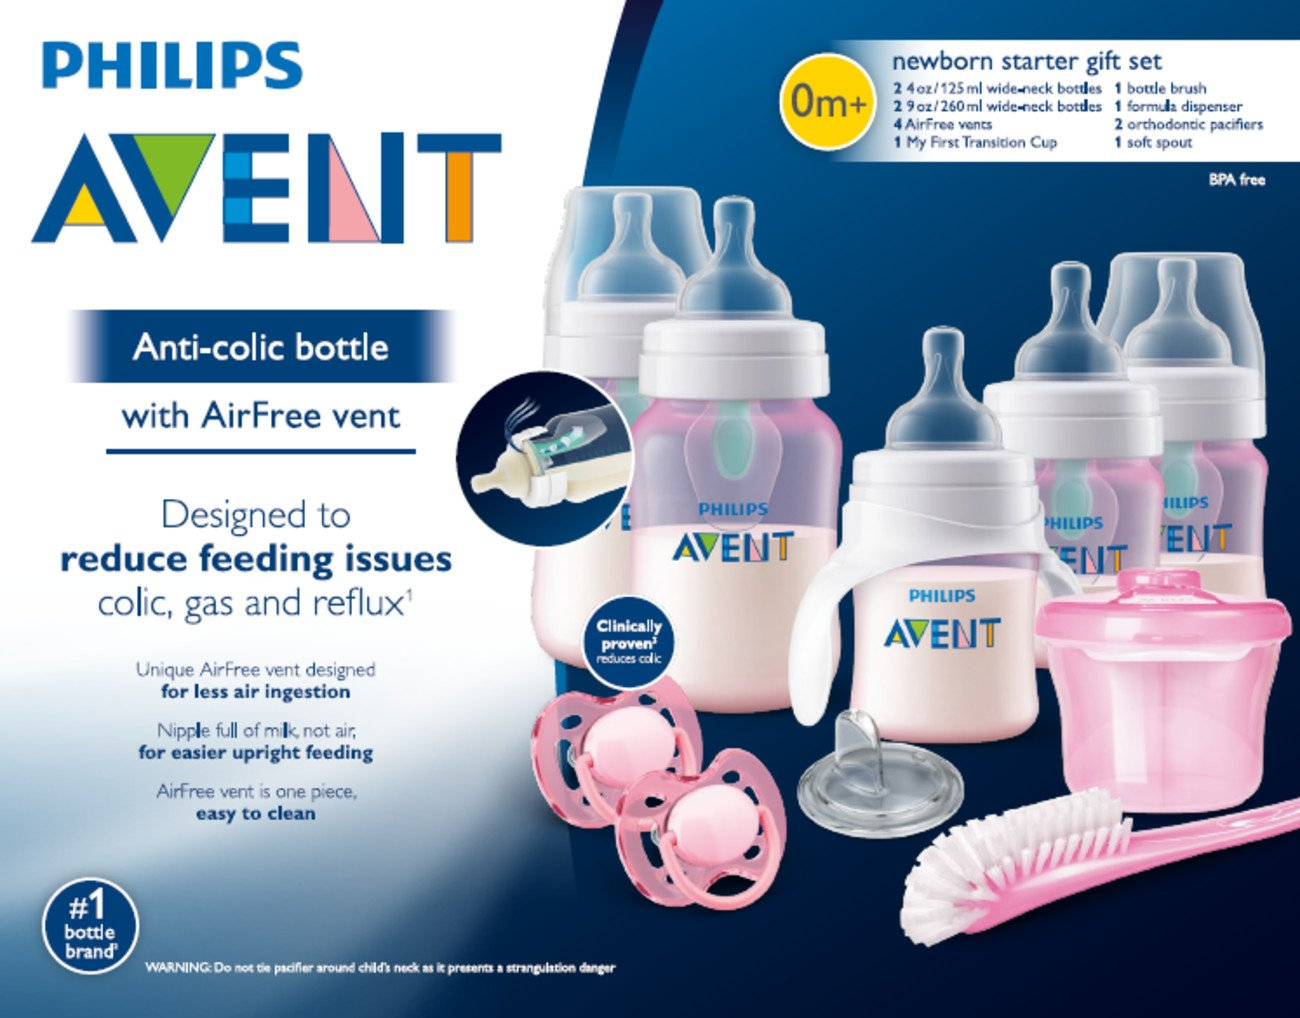 c494c6e6d19 Amazon.com   Philips Avent Anti-Colic Baby Bottle with AirFree Vent  Beginner Gift Set Pink